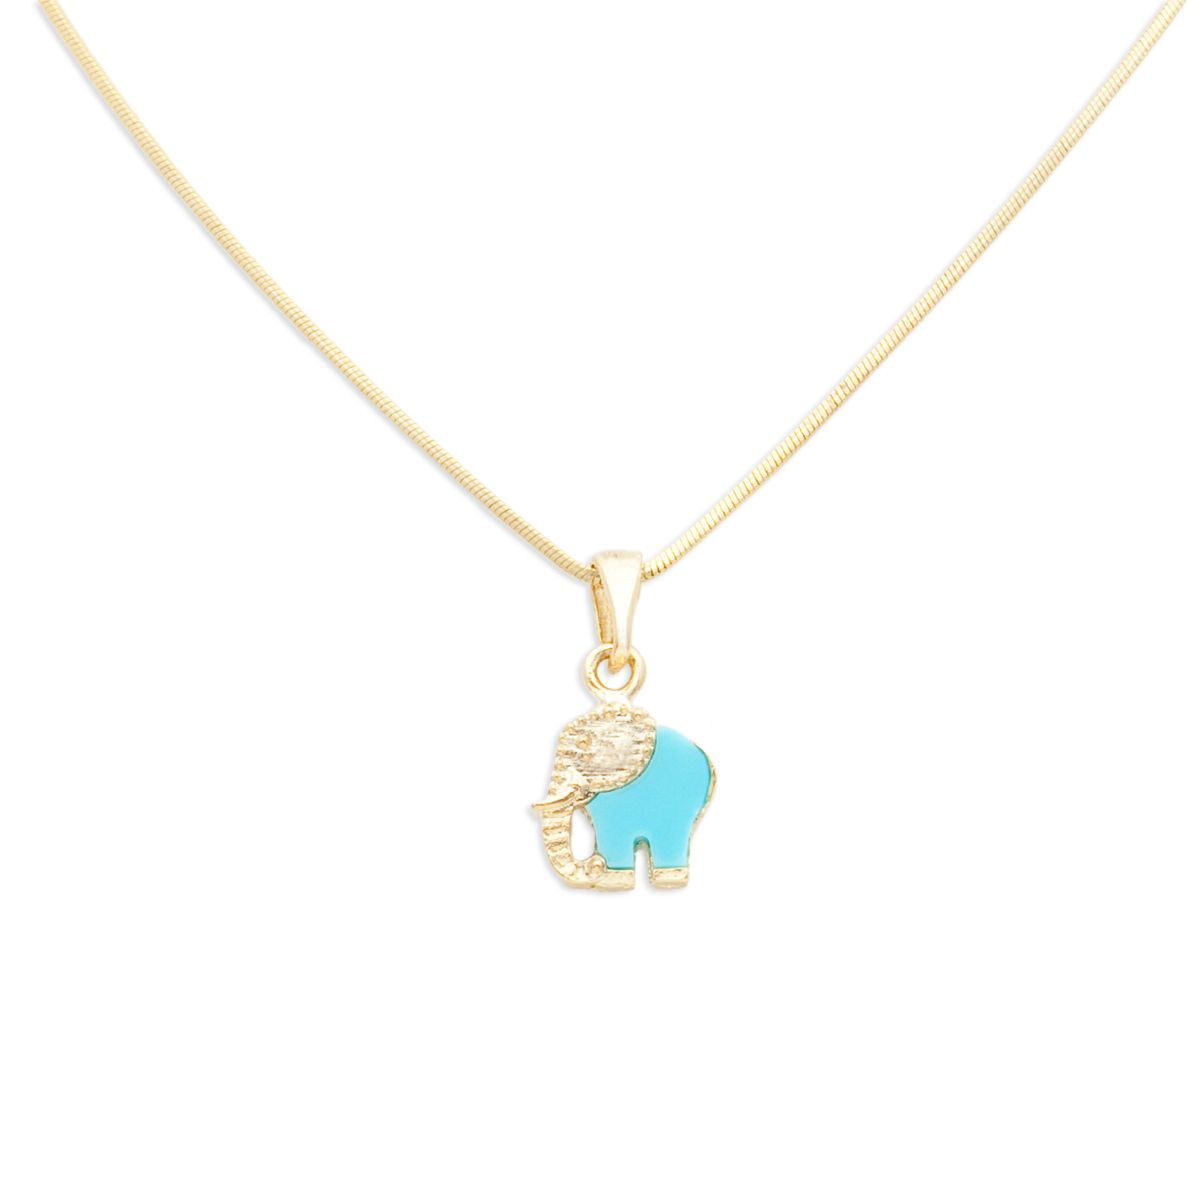 Add Some Charm To Your Everyday Ensemble With This Jasmine Elephant Charm  Necklace. The Turquoise And Gold Design Of The Elephant Charm Is Striking  On Its ...